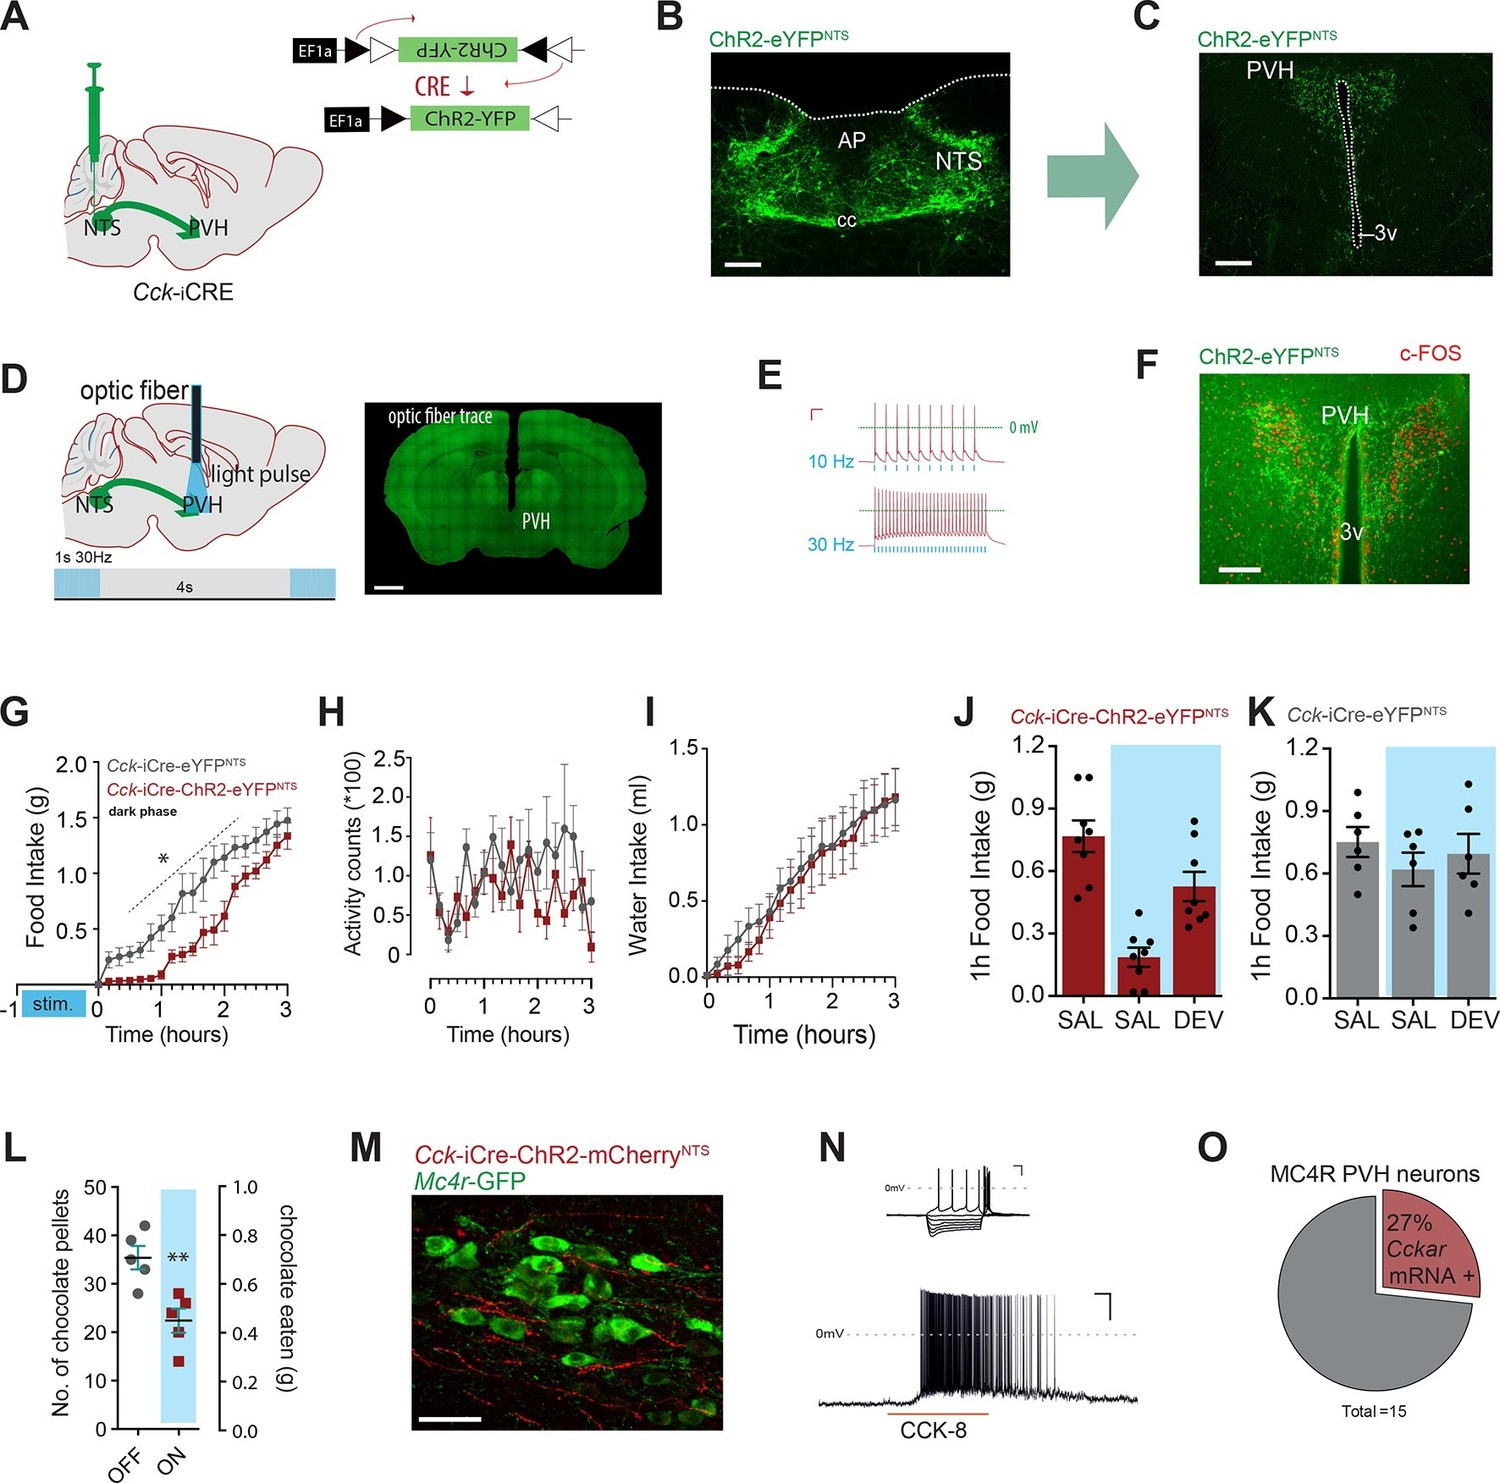 Appetite Controlled By A Cholecystokinin Nucleus Of The Solitary Circuits Gt Use Neural Sensors To Build Smart Sensor Systems Using Activation Ccknts Neurons Efferent Pvh Suppresses